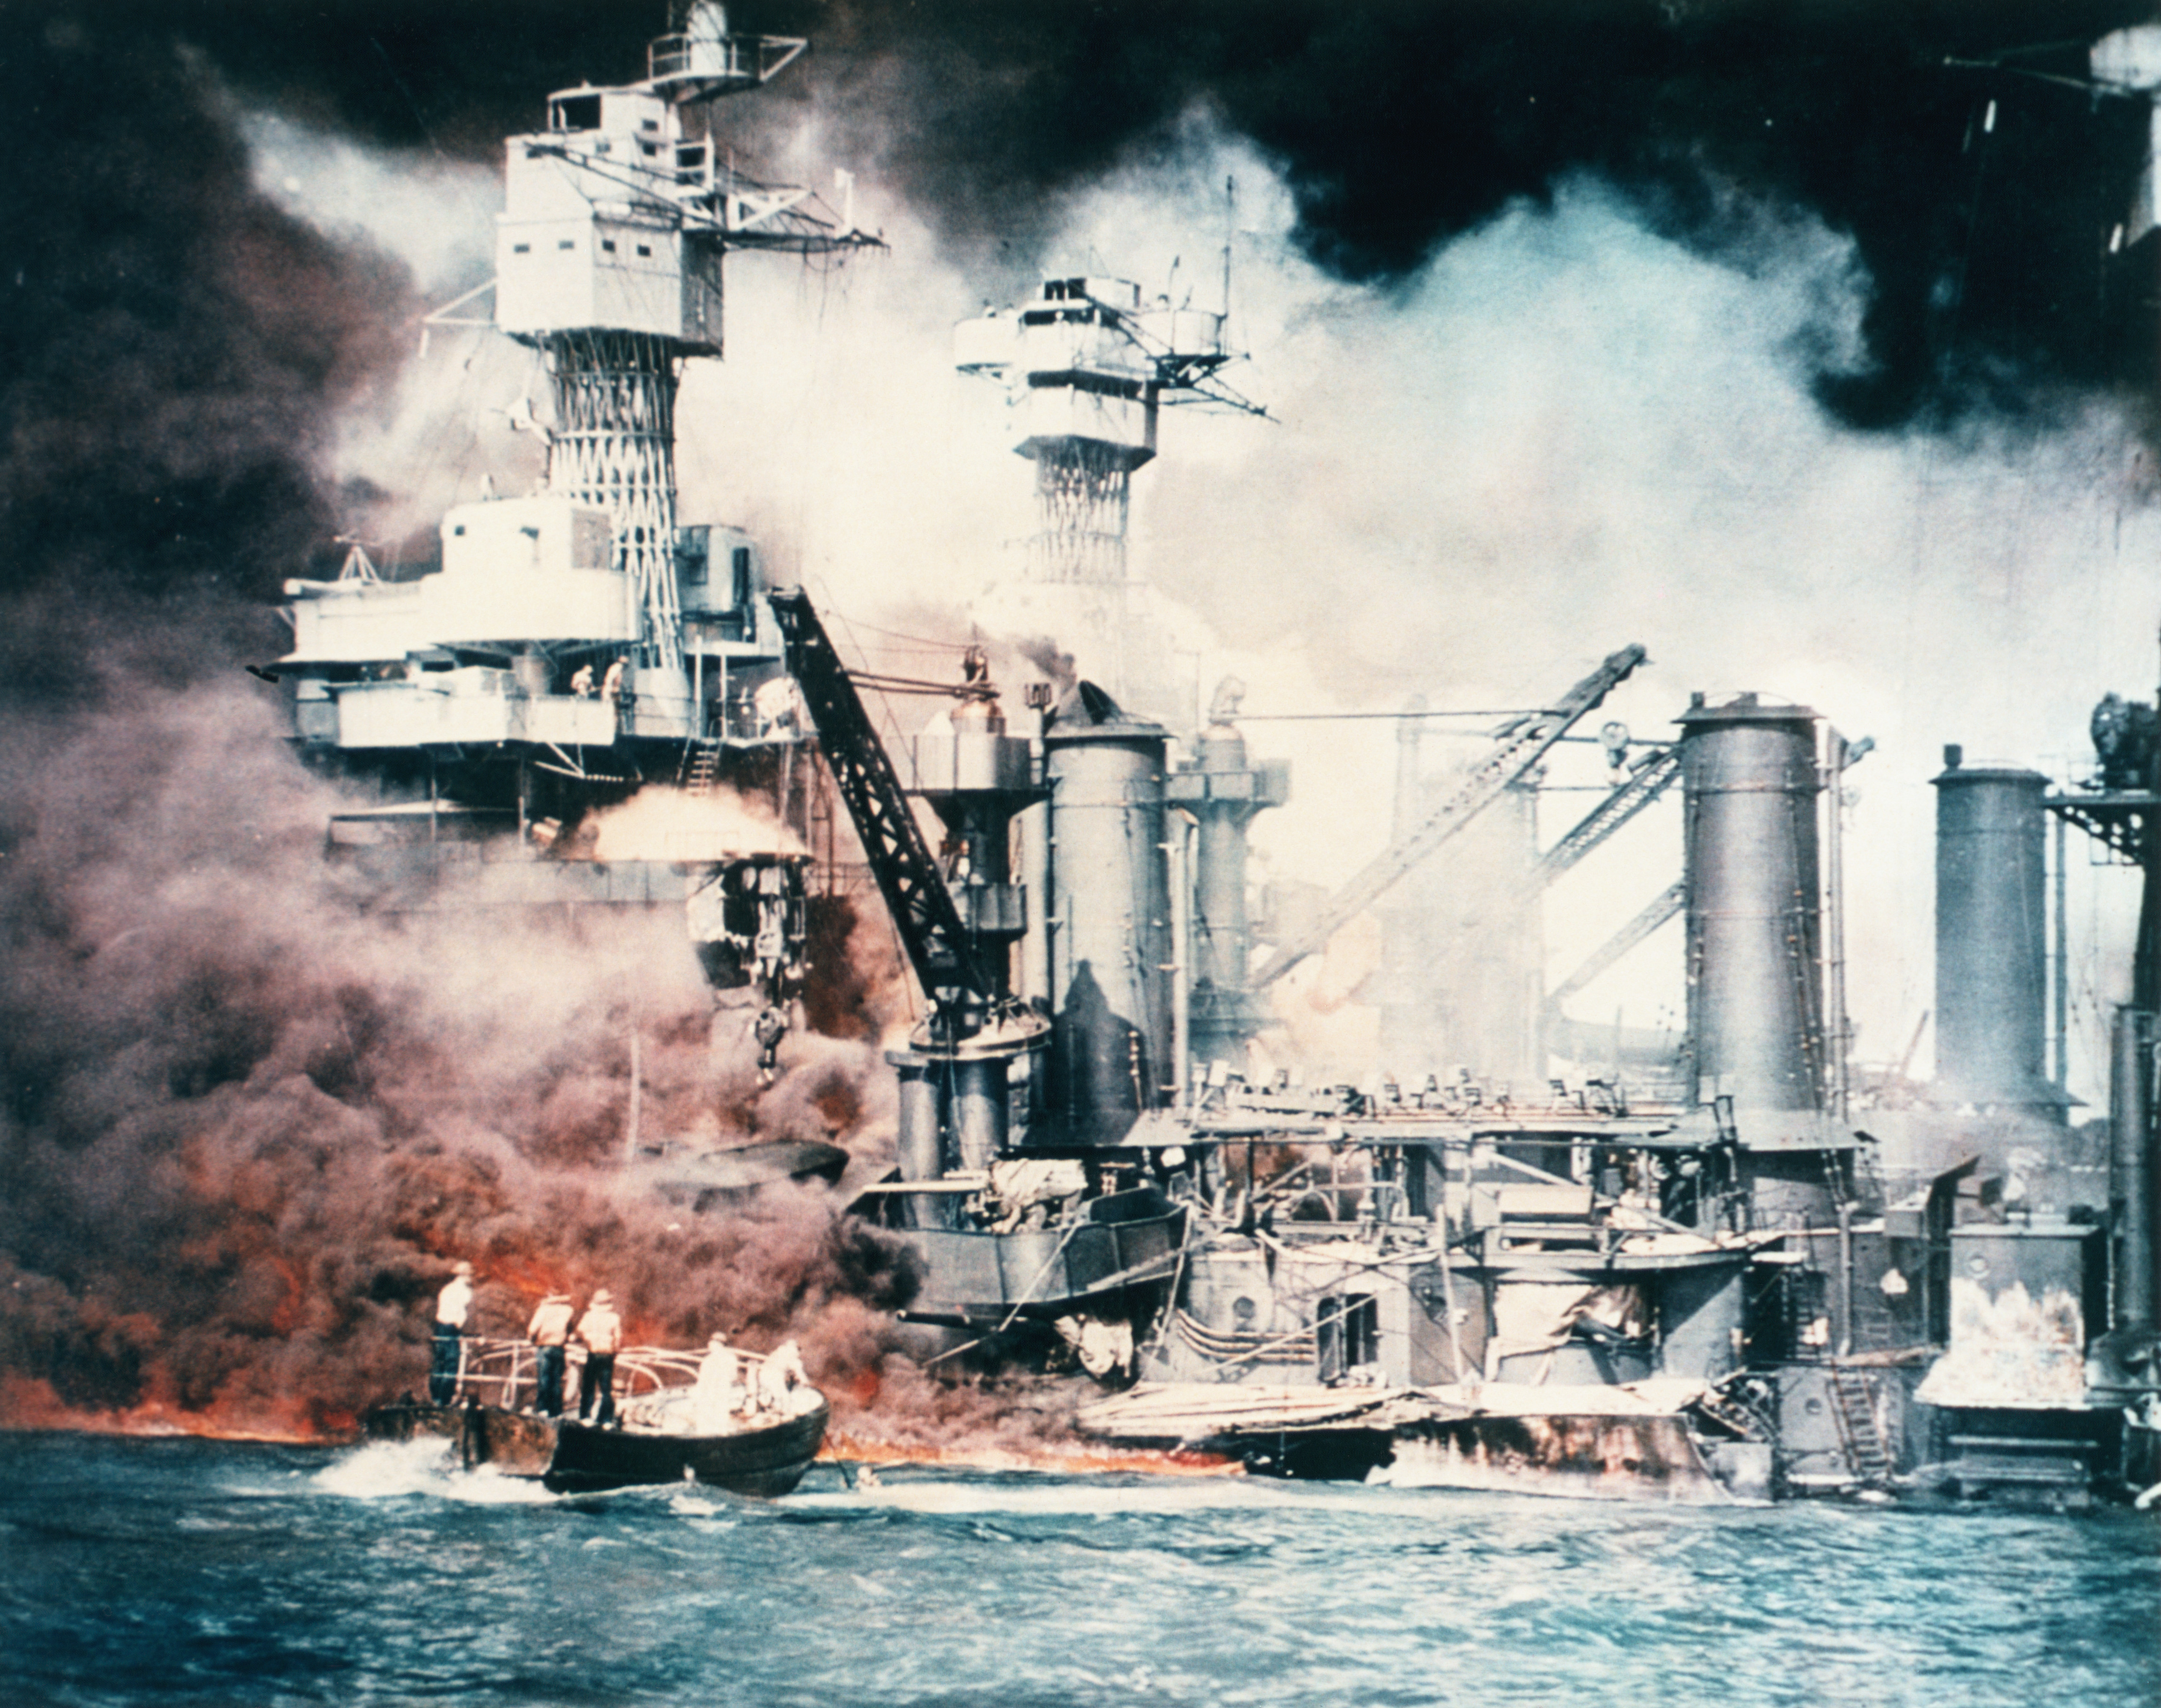 a history of the japanese attack on pearl harbor By alan d zimm, casemate publishing, havertown, pa (2011) reviewed by charles c kolb, phd there seems to be no end to new publications on the subject of the japanese attack on pearl harbor on 7 december 1941.